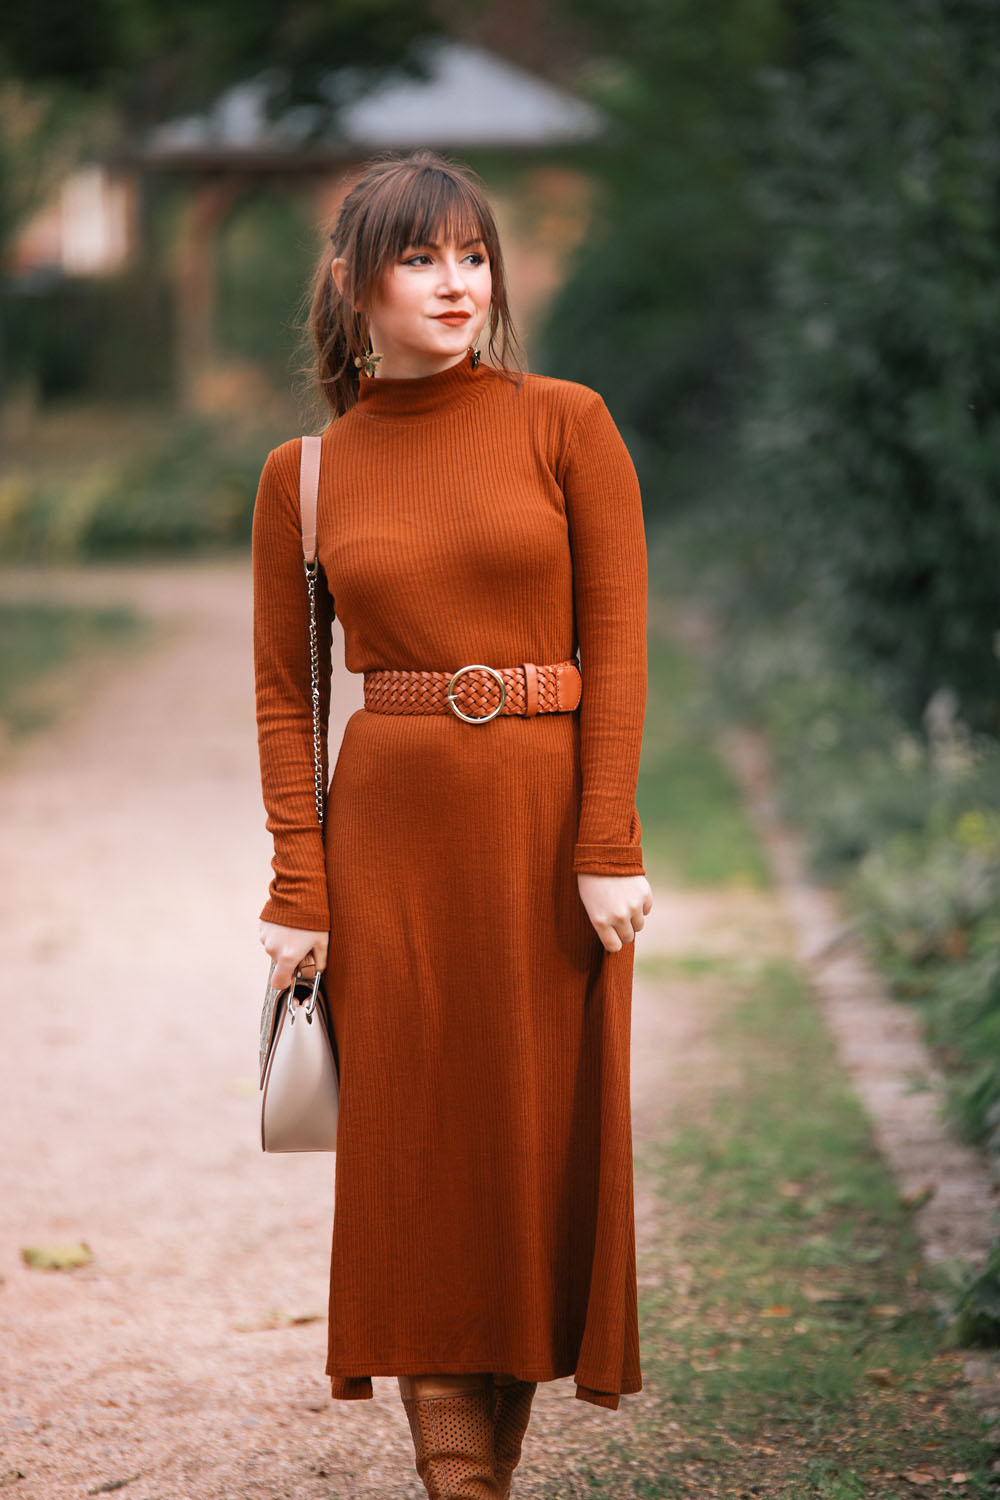 Modetrends-Herbst-Winter-2018-Brauntöne